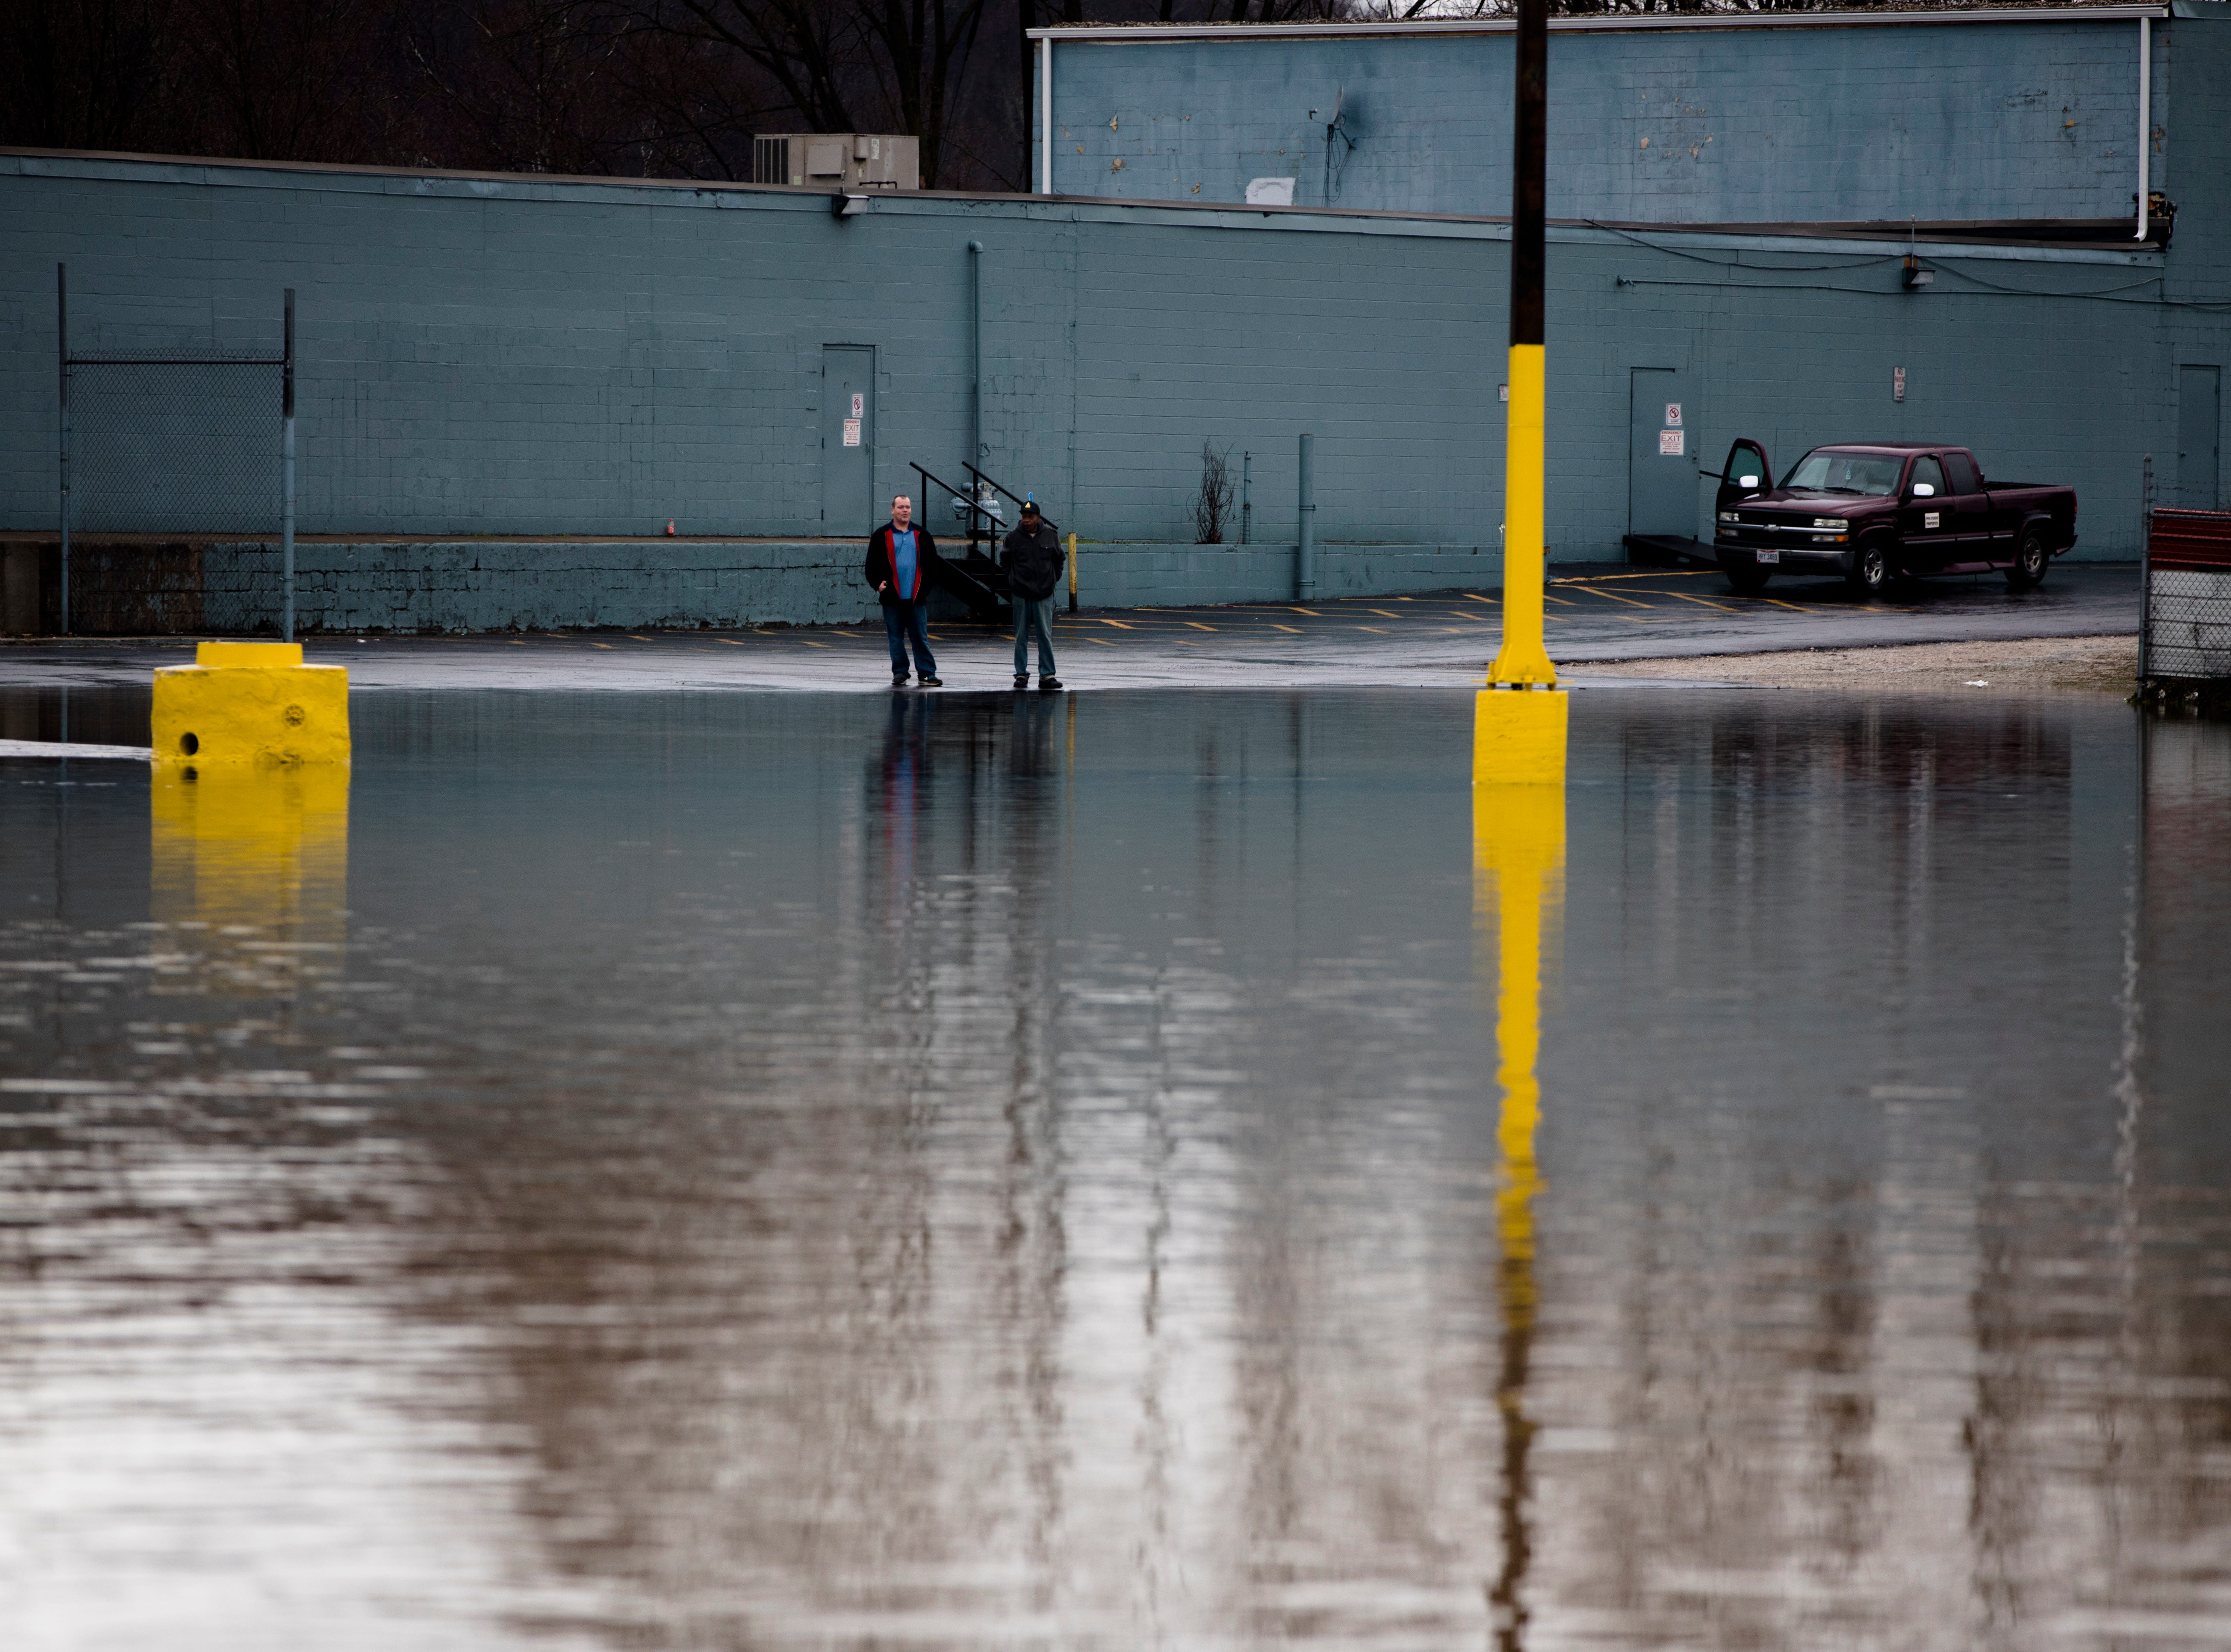 People look across a flooded parking lot on Kellogg Avenue on Tuesday, Feb. 12, 2019.